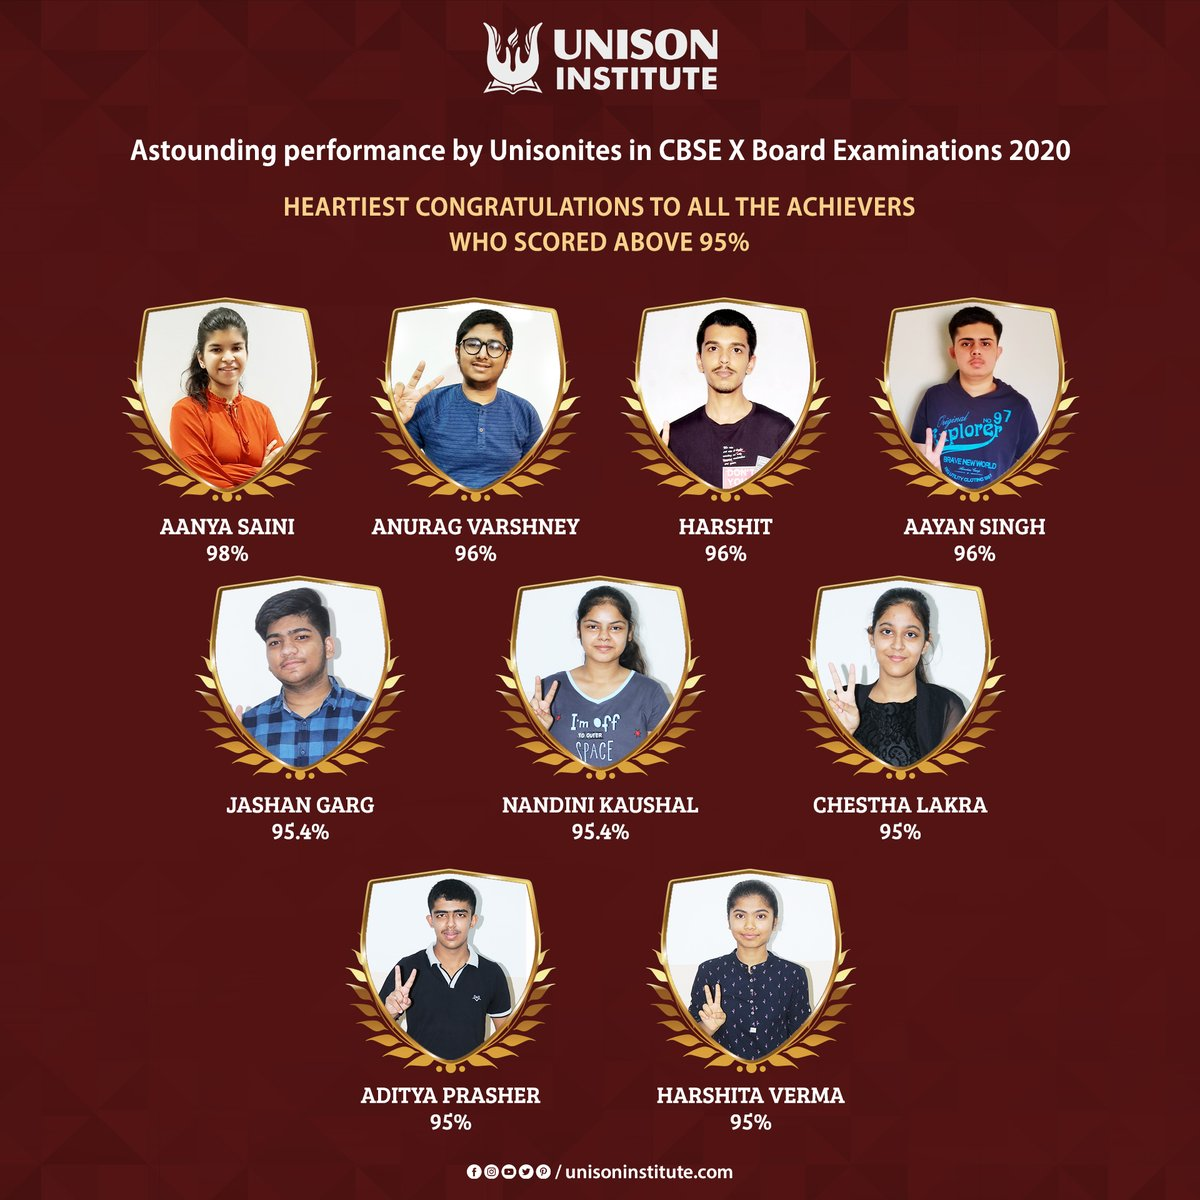 Setting inspiration for generations to come, Unisonites have successfully reaped the fruits of their hard work in CBSE Board Exams.  #UnisonInstitute #OnlineTutorials #CBSEResults #BestCoachingintheRegion #Class10thToppers #SuccessStories #Class10thResultspic.twitter.com/6d6WYloSrv